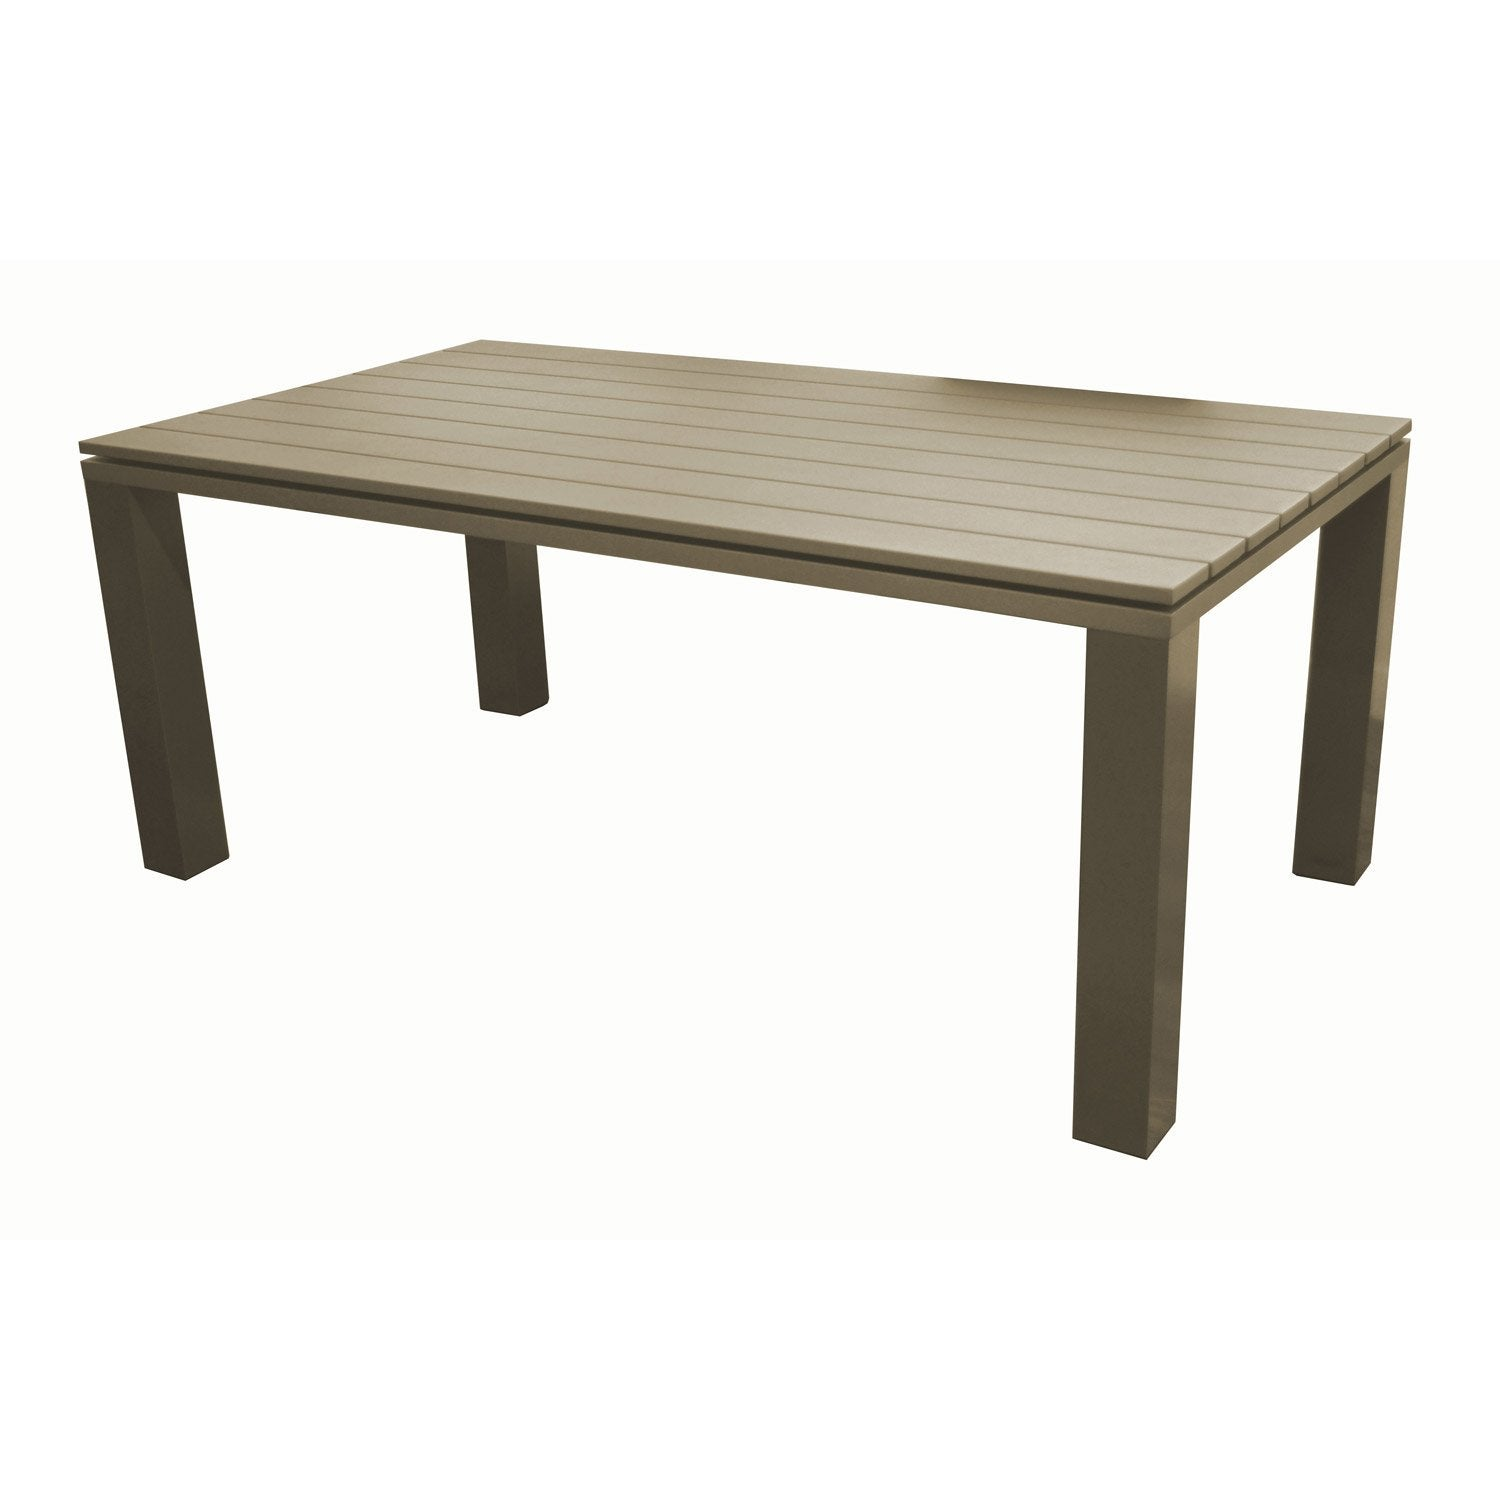 Table de jardin elena rectangulaire taupe 8 personnes for Table jardin 8 personnes